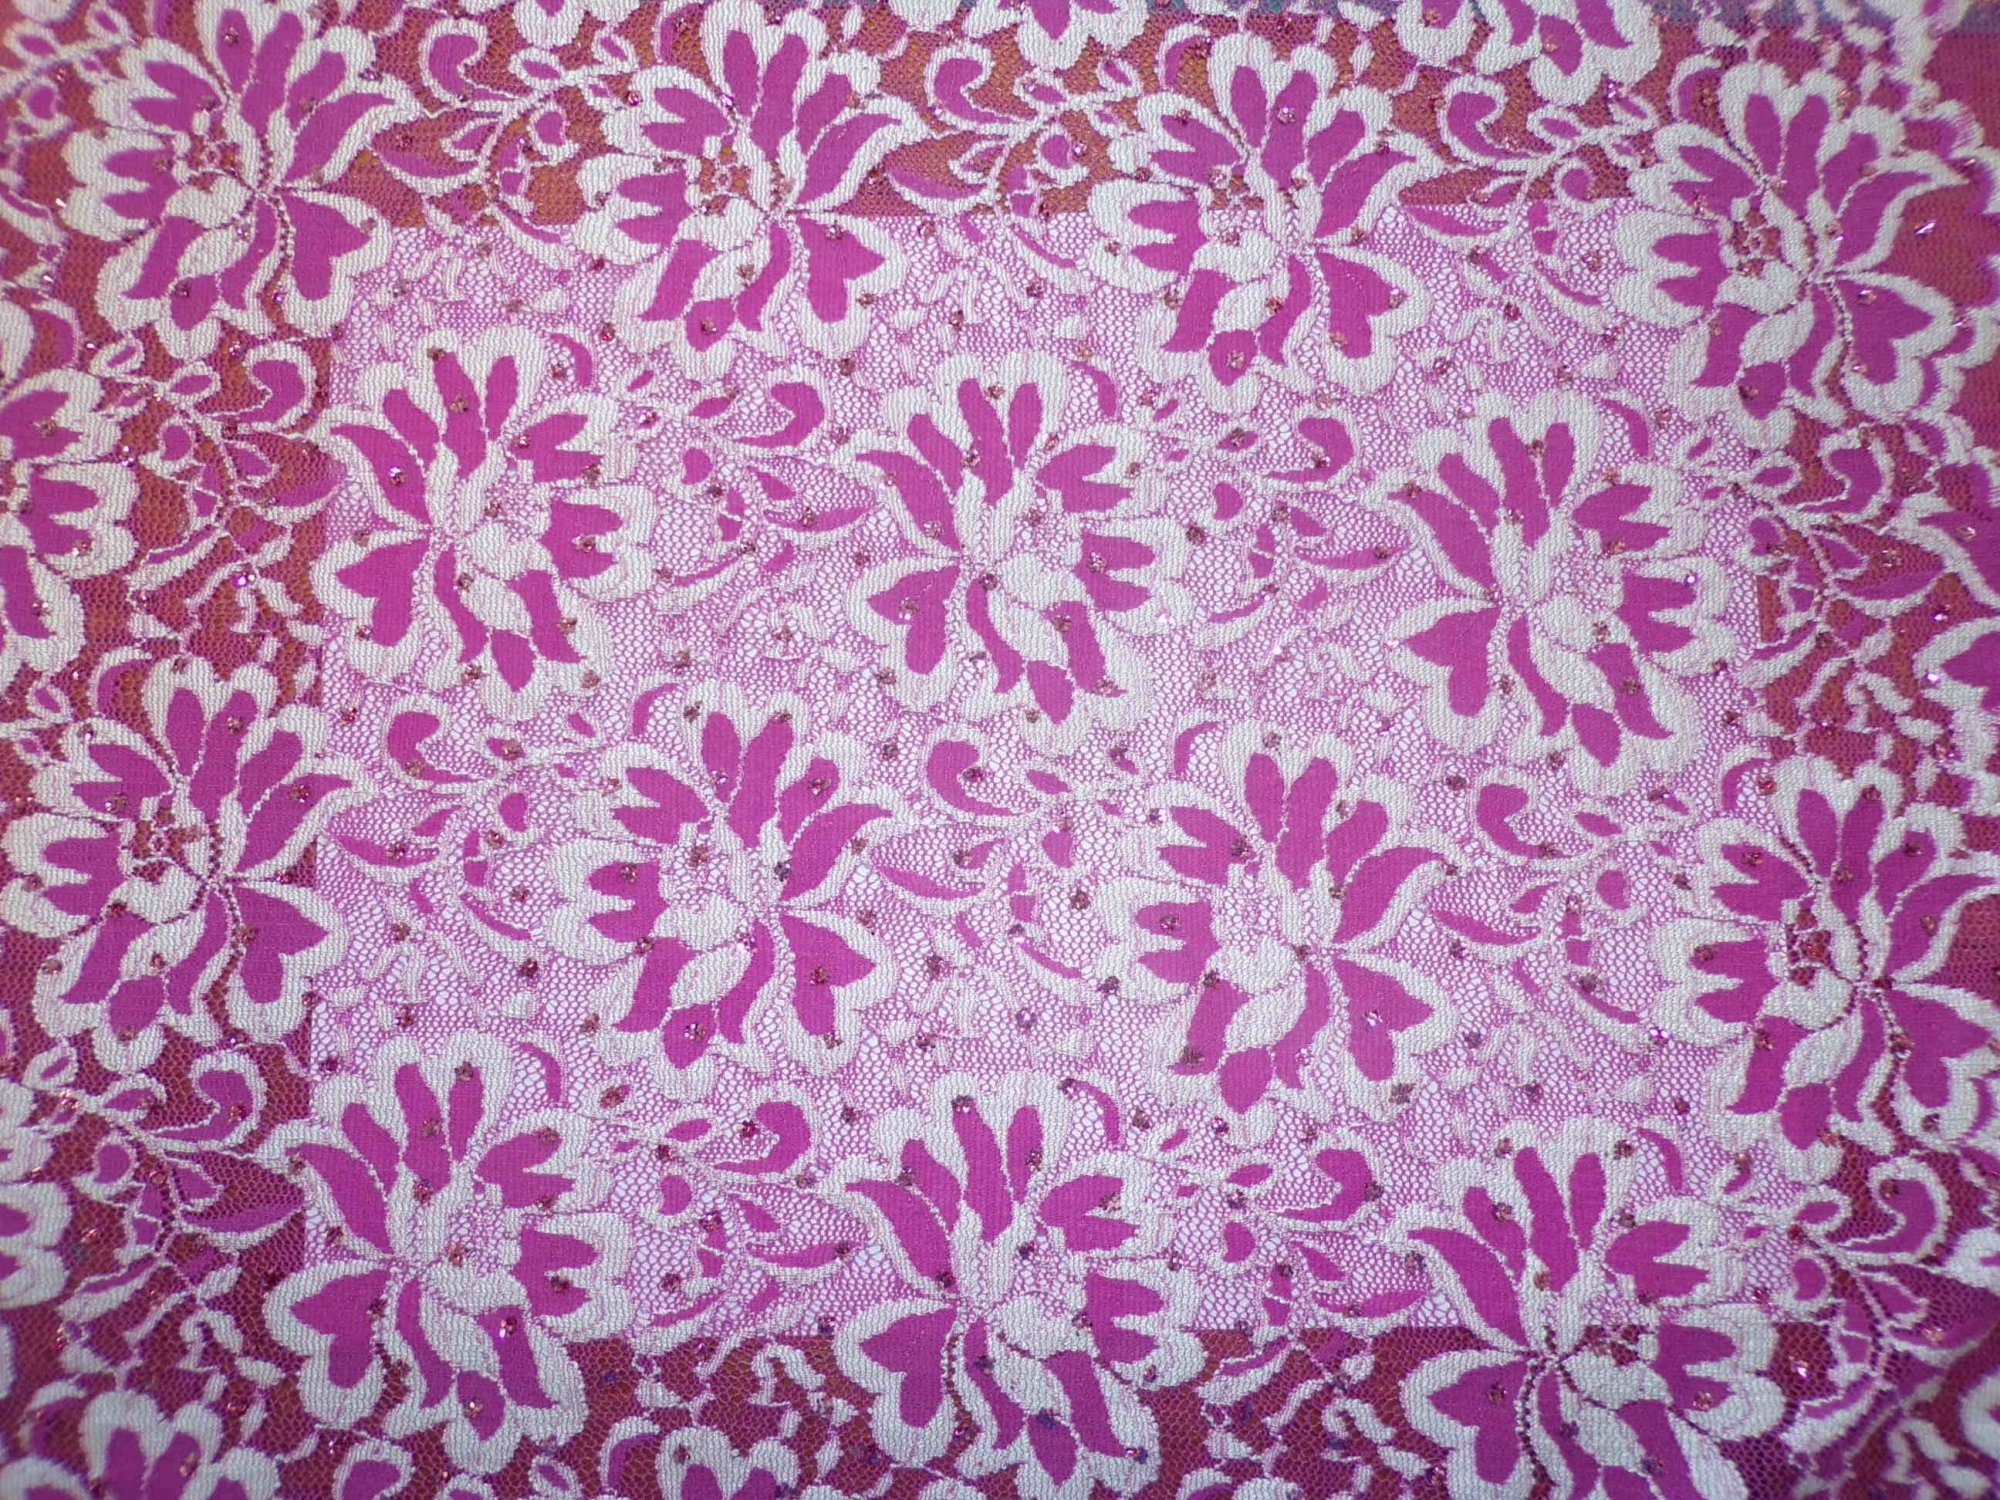 Polyester Lycra Stretch Lace - Fuschia and White